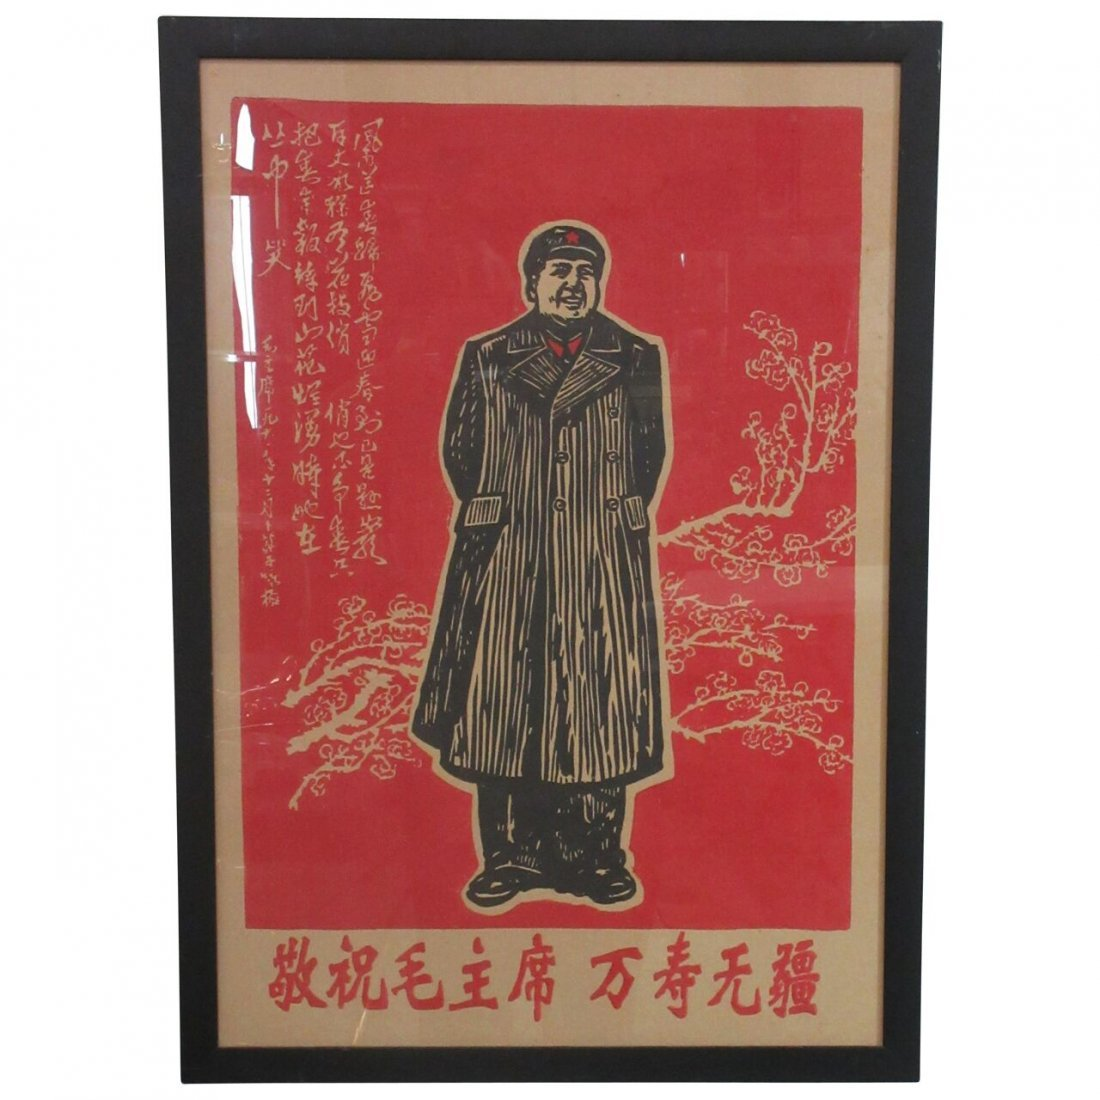 Poster Lithograph/Block print in red of Chairman Mao